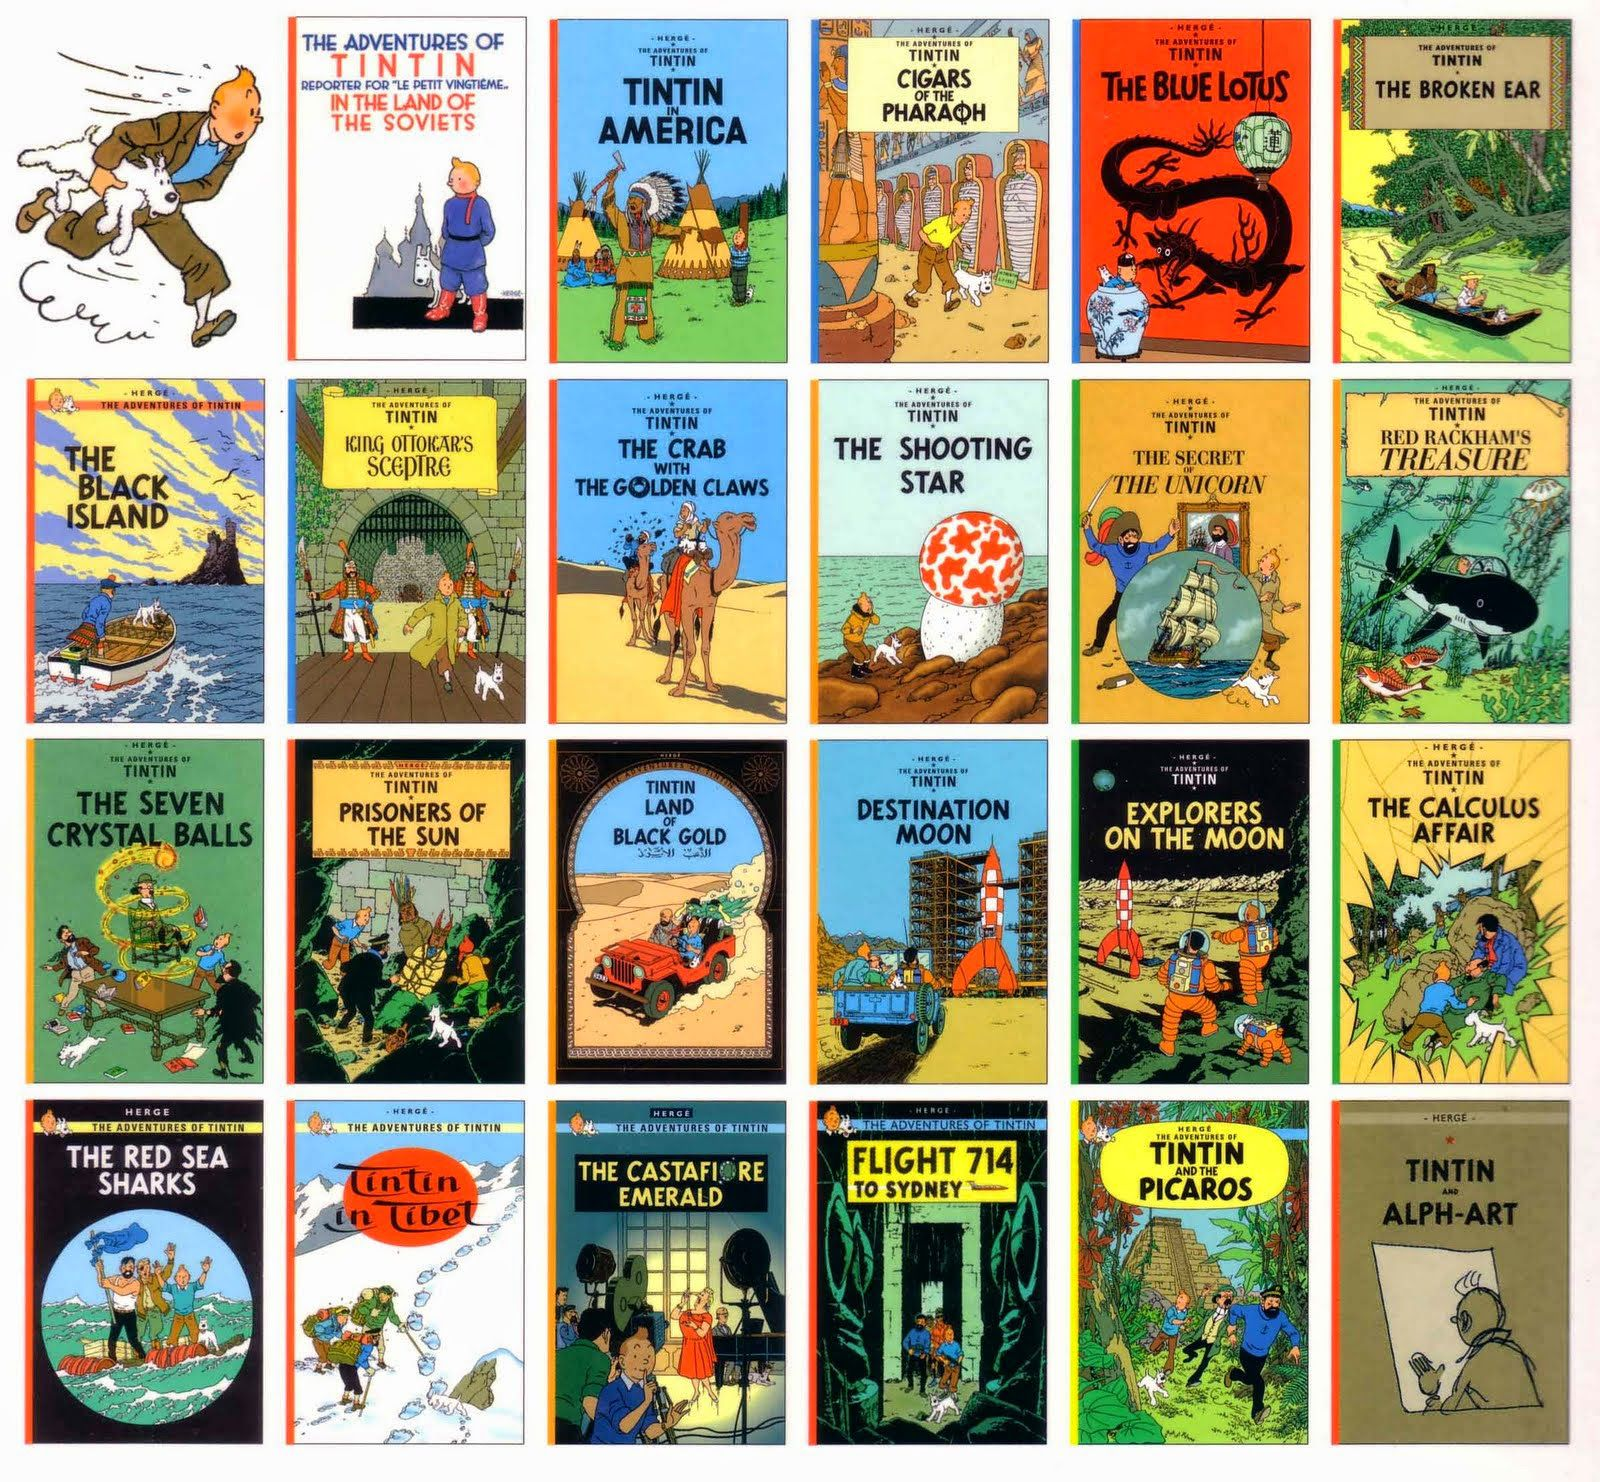 "Image result for The Adventures of Tintin"" by Hergé images"